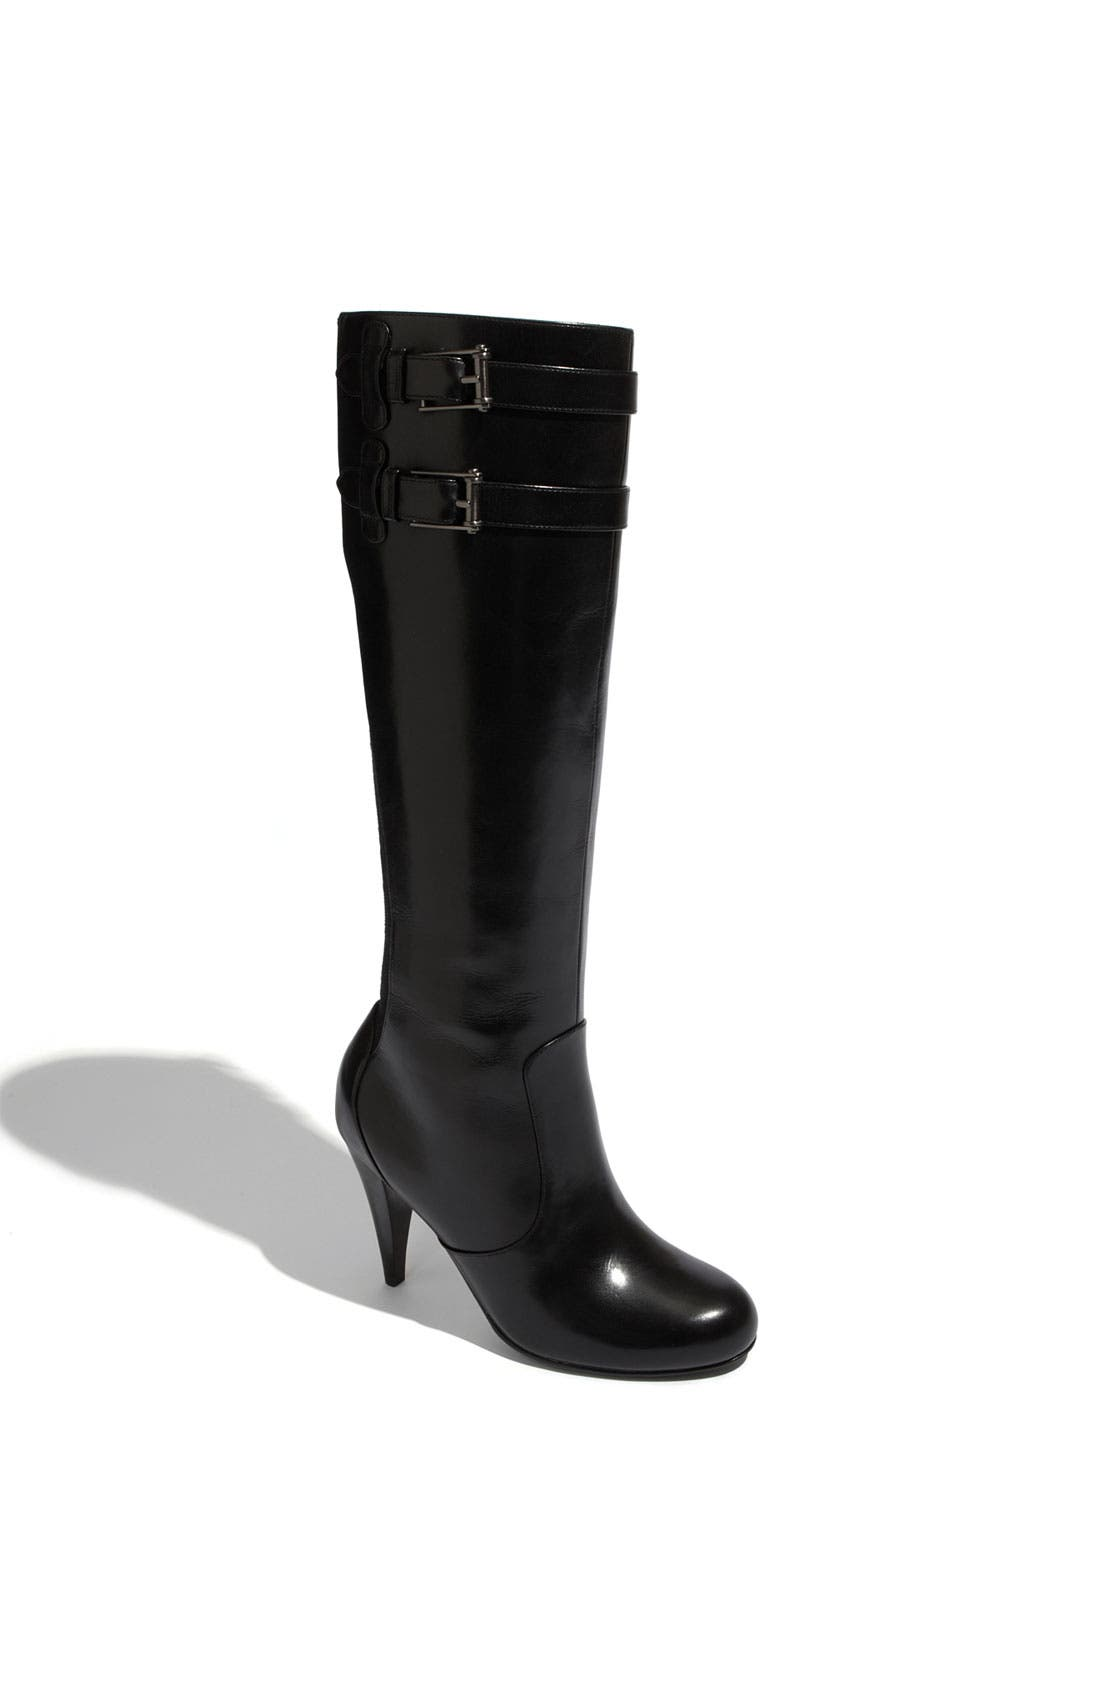 Alternate Image 1 Selected - Cole Haan 'Air Jalisa' Leather Tall Boot